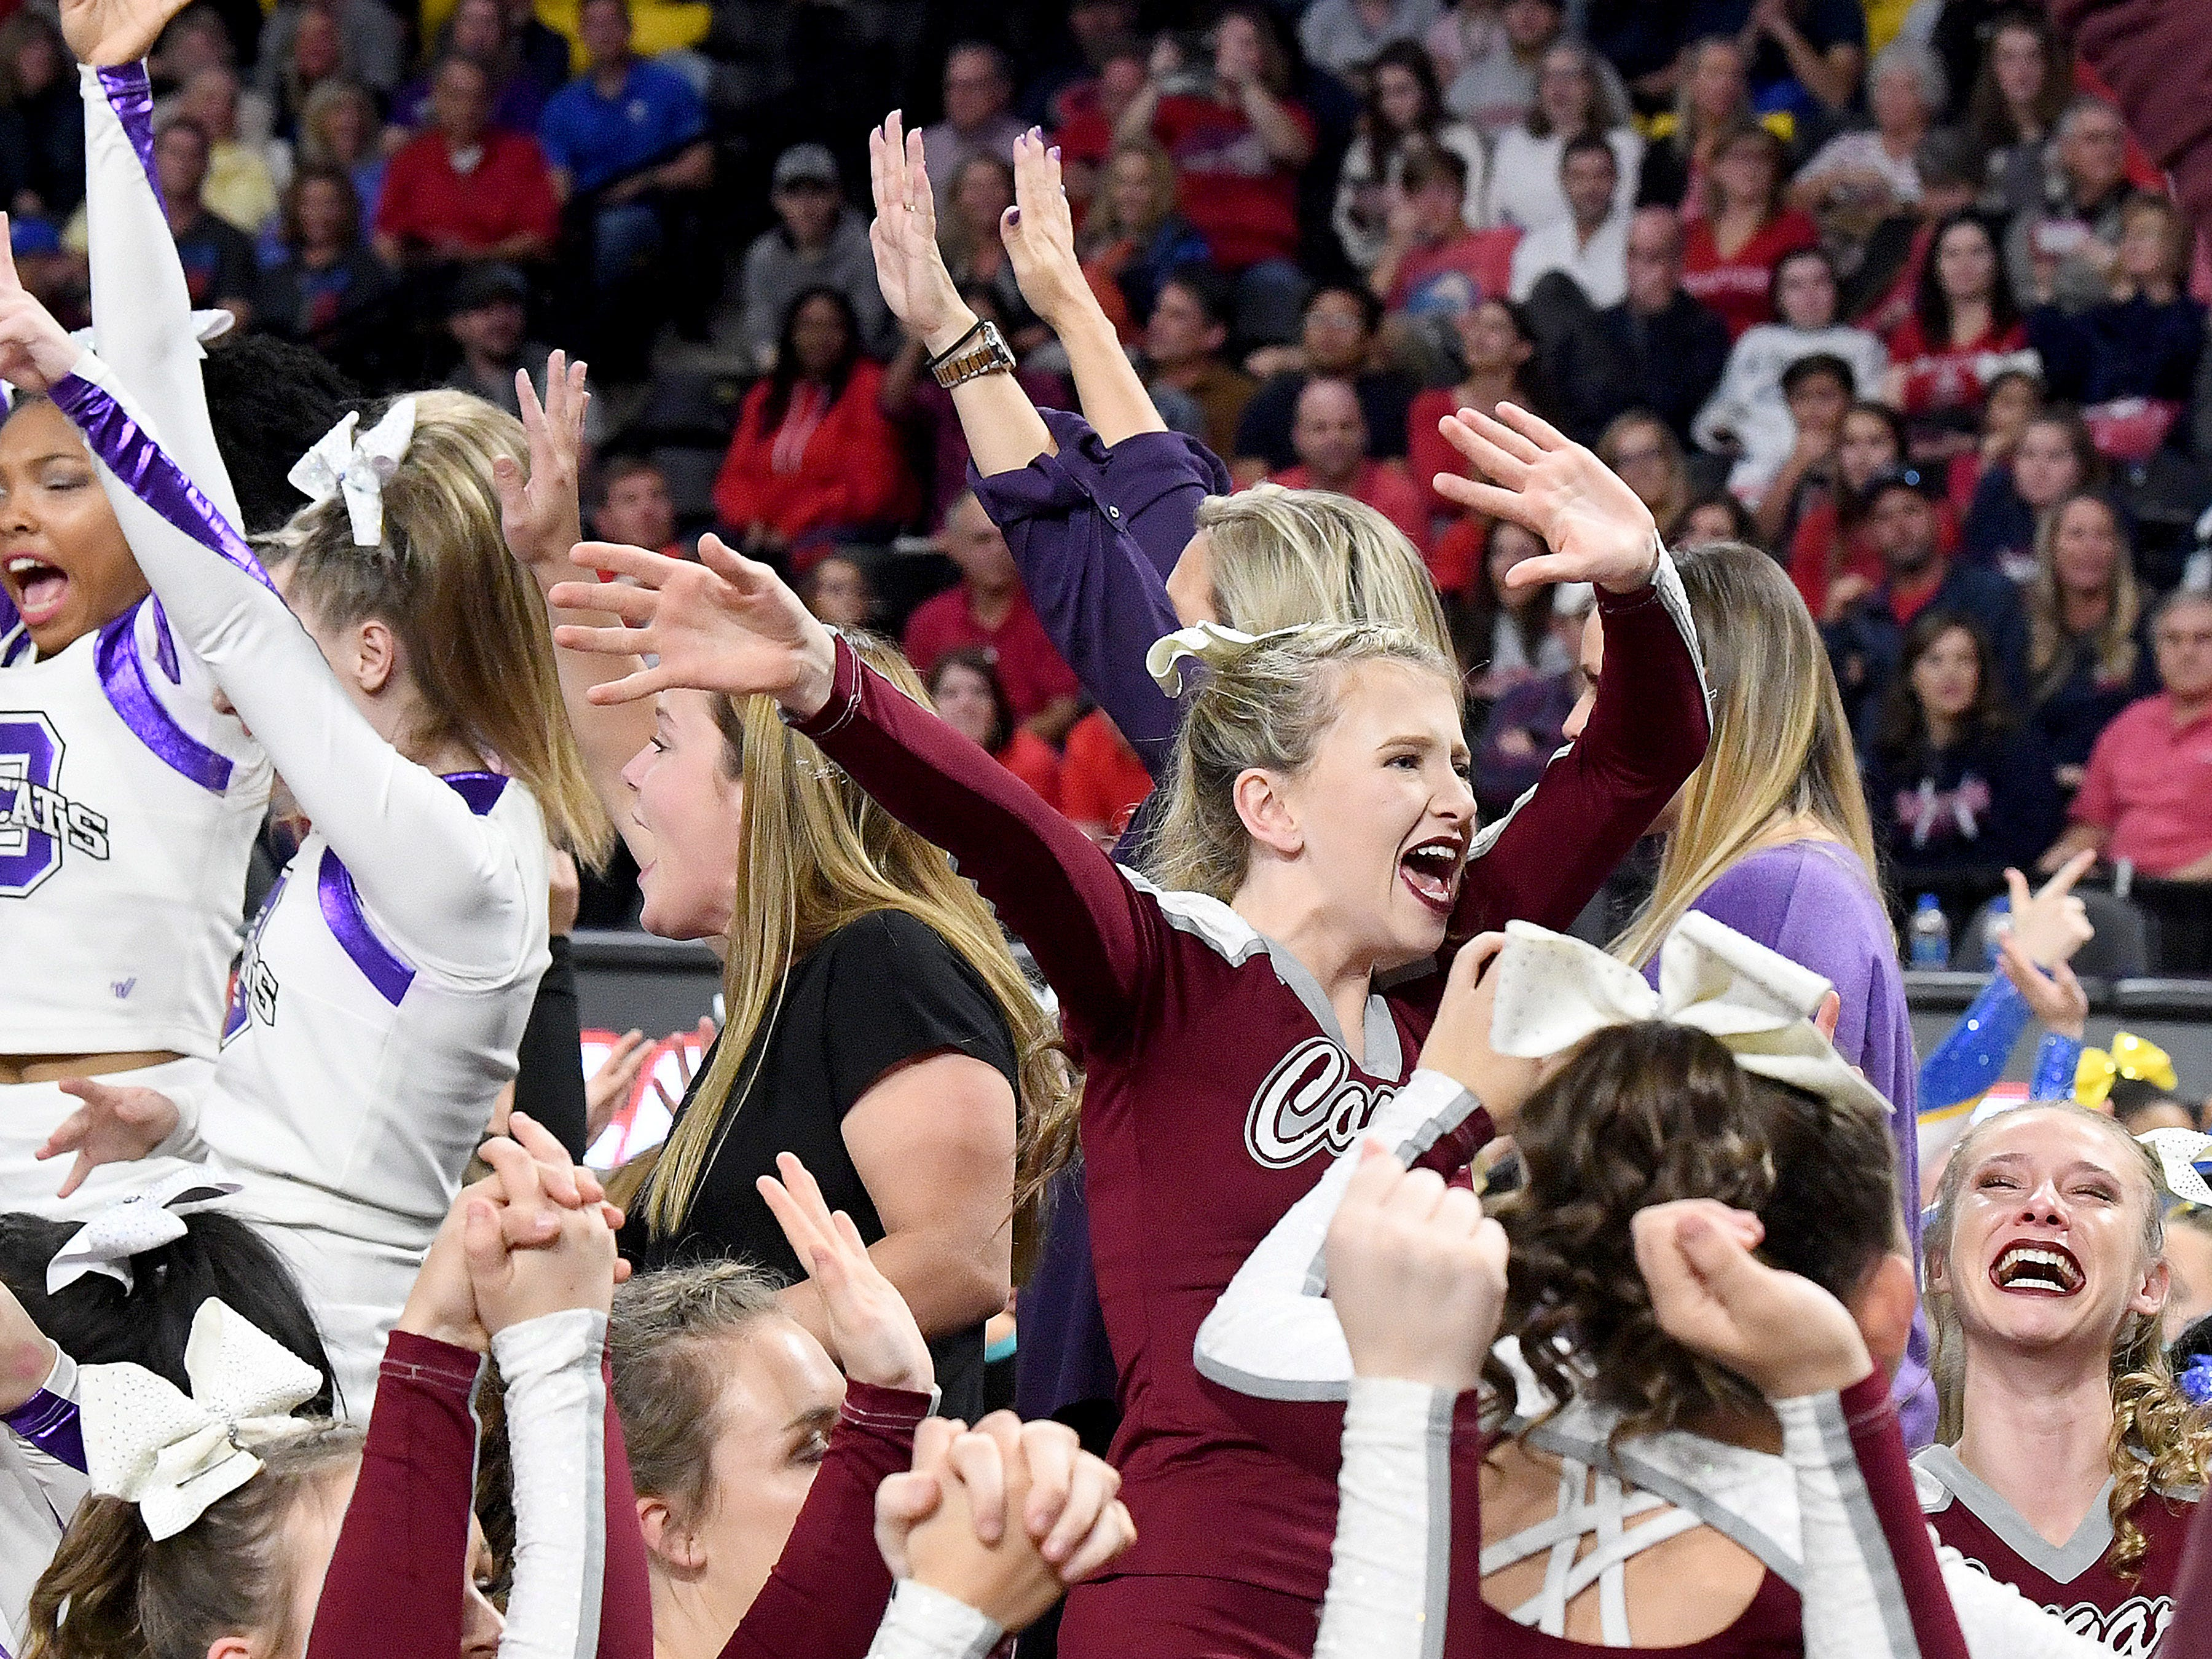 A Stuarts Draft's competition cheerleader dances to the music while waiting for the results to be announced in the VHSL Competition Cheer Championships in Richmond on Saturday, Nov. 3, 2018.